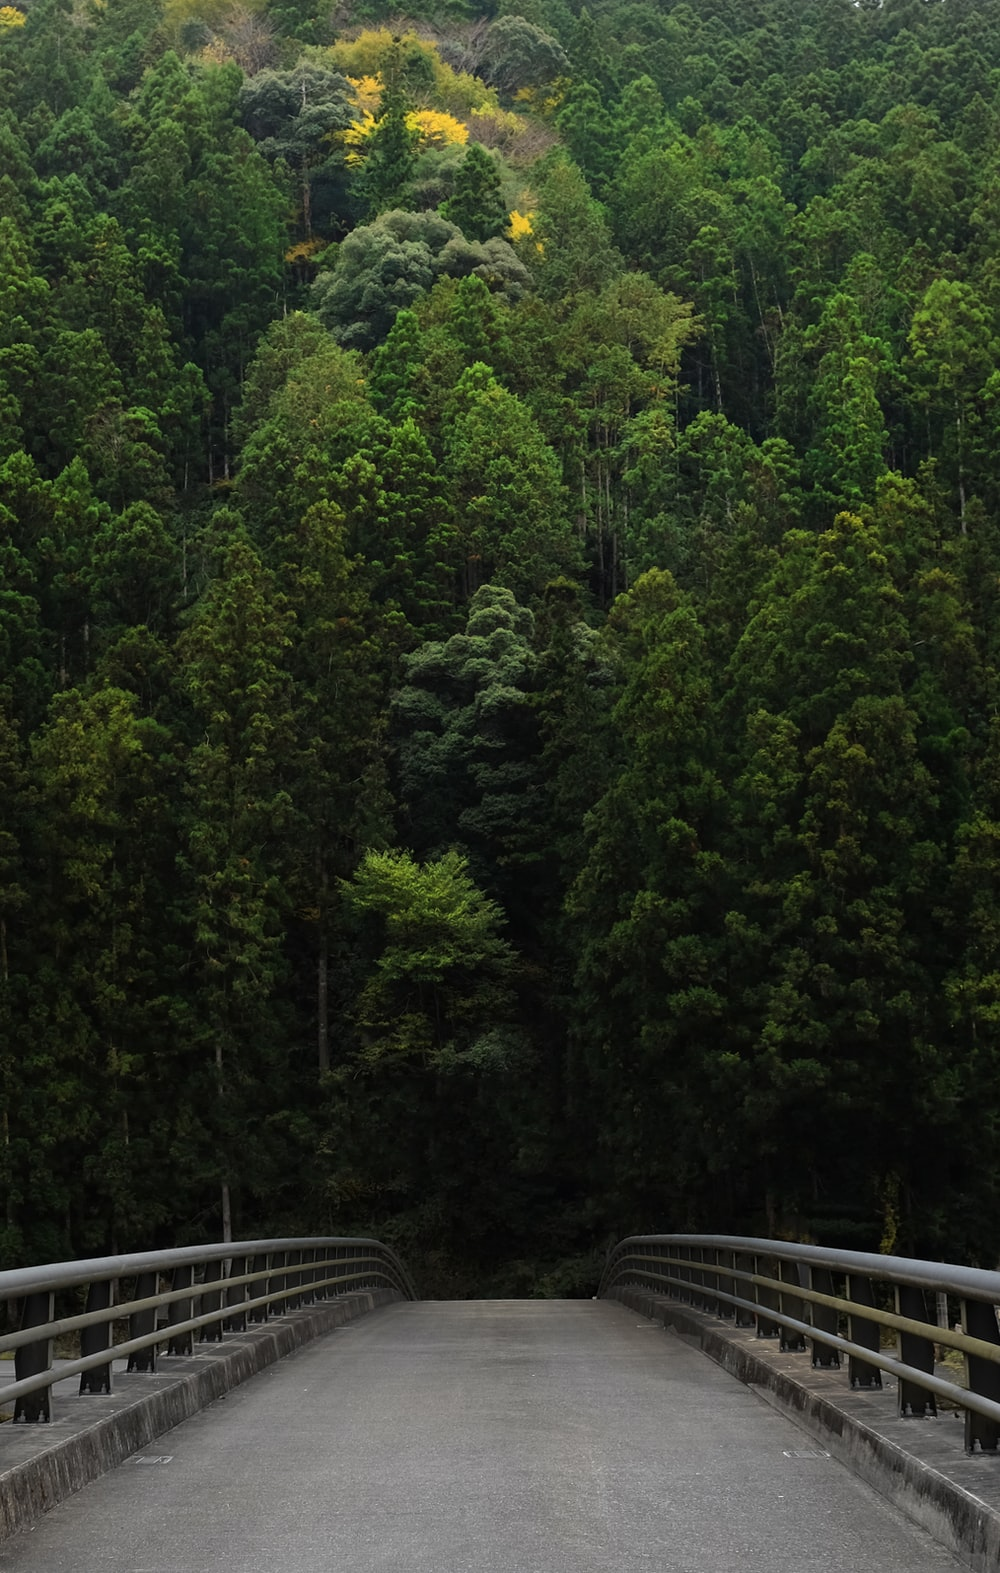 bridge in front of thick forest trees